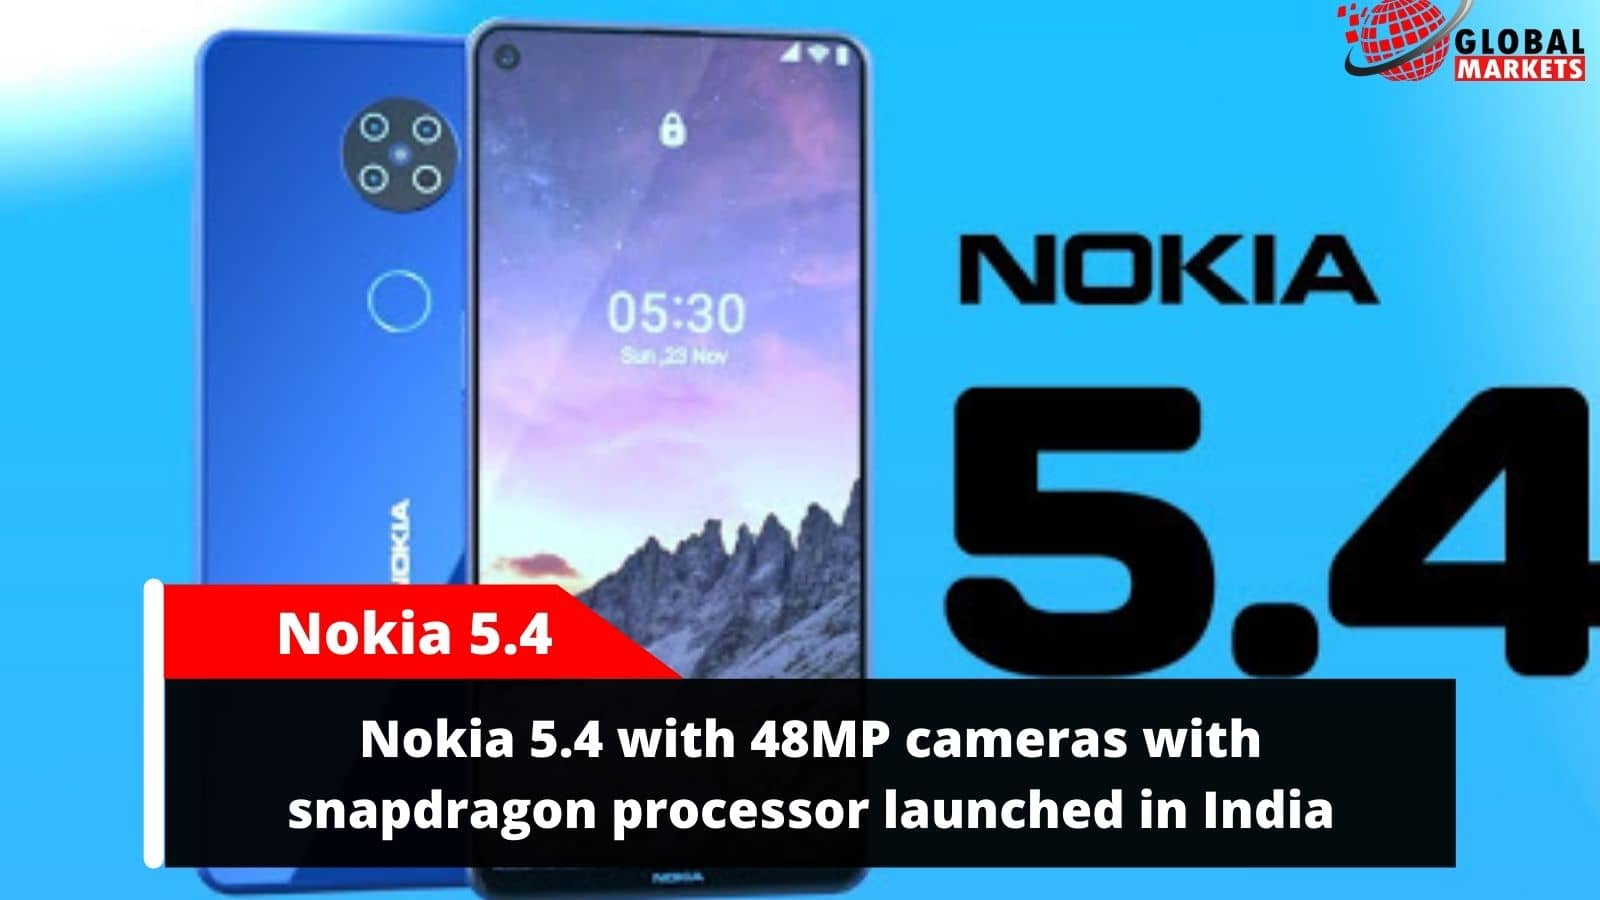 Nokia 5.4 with 48MP cameras with snapdragon processor launched in India